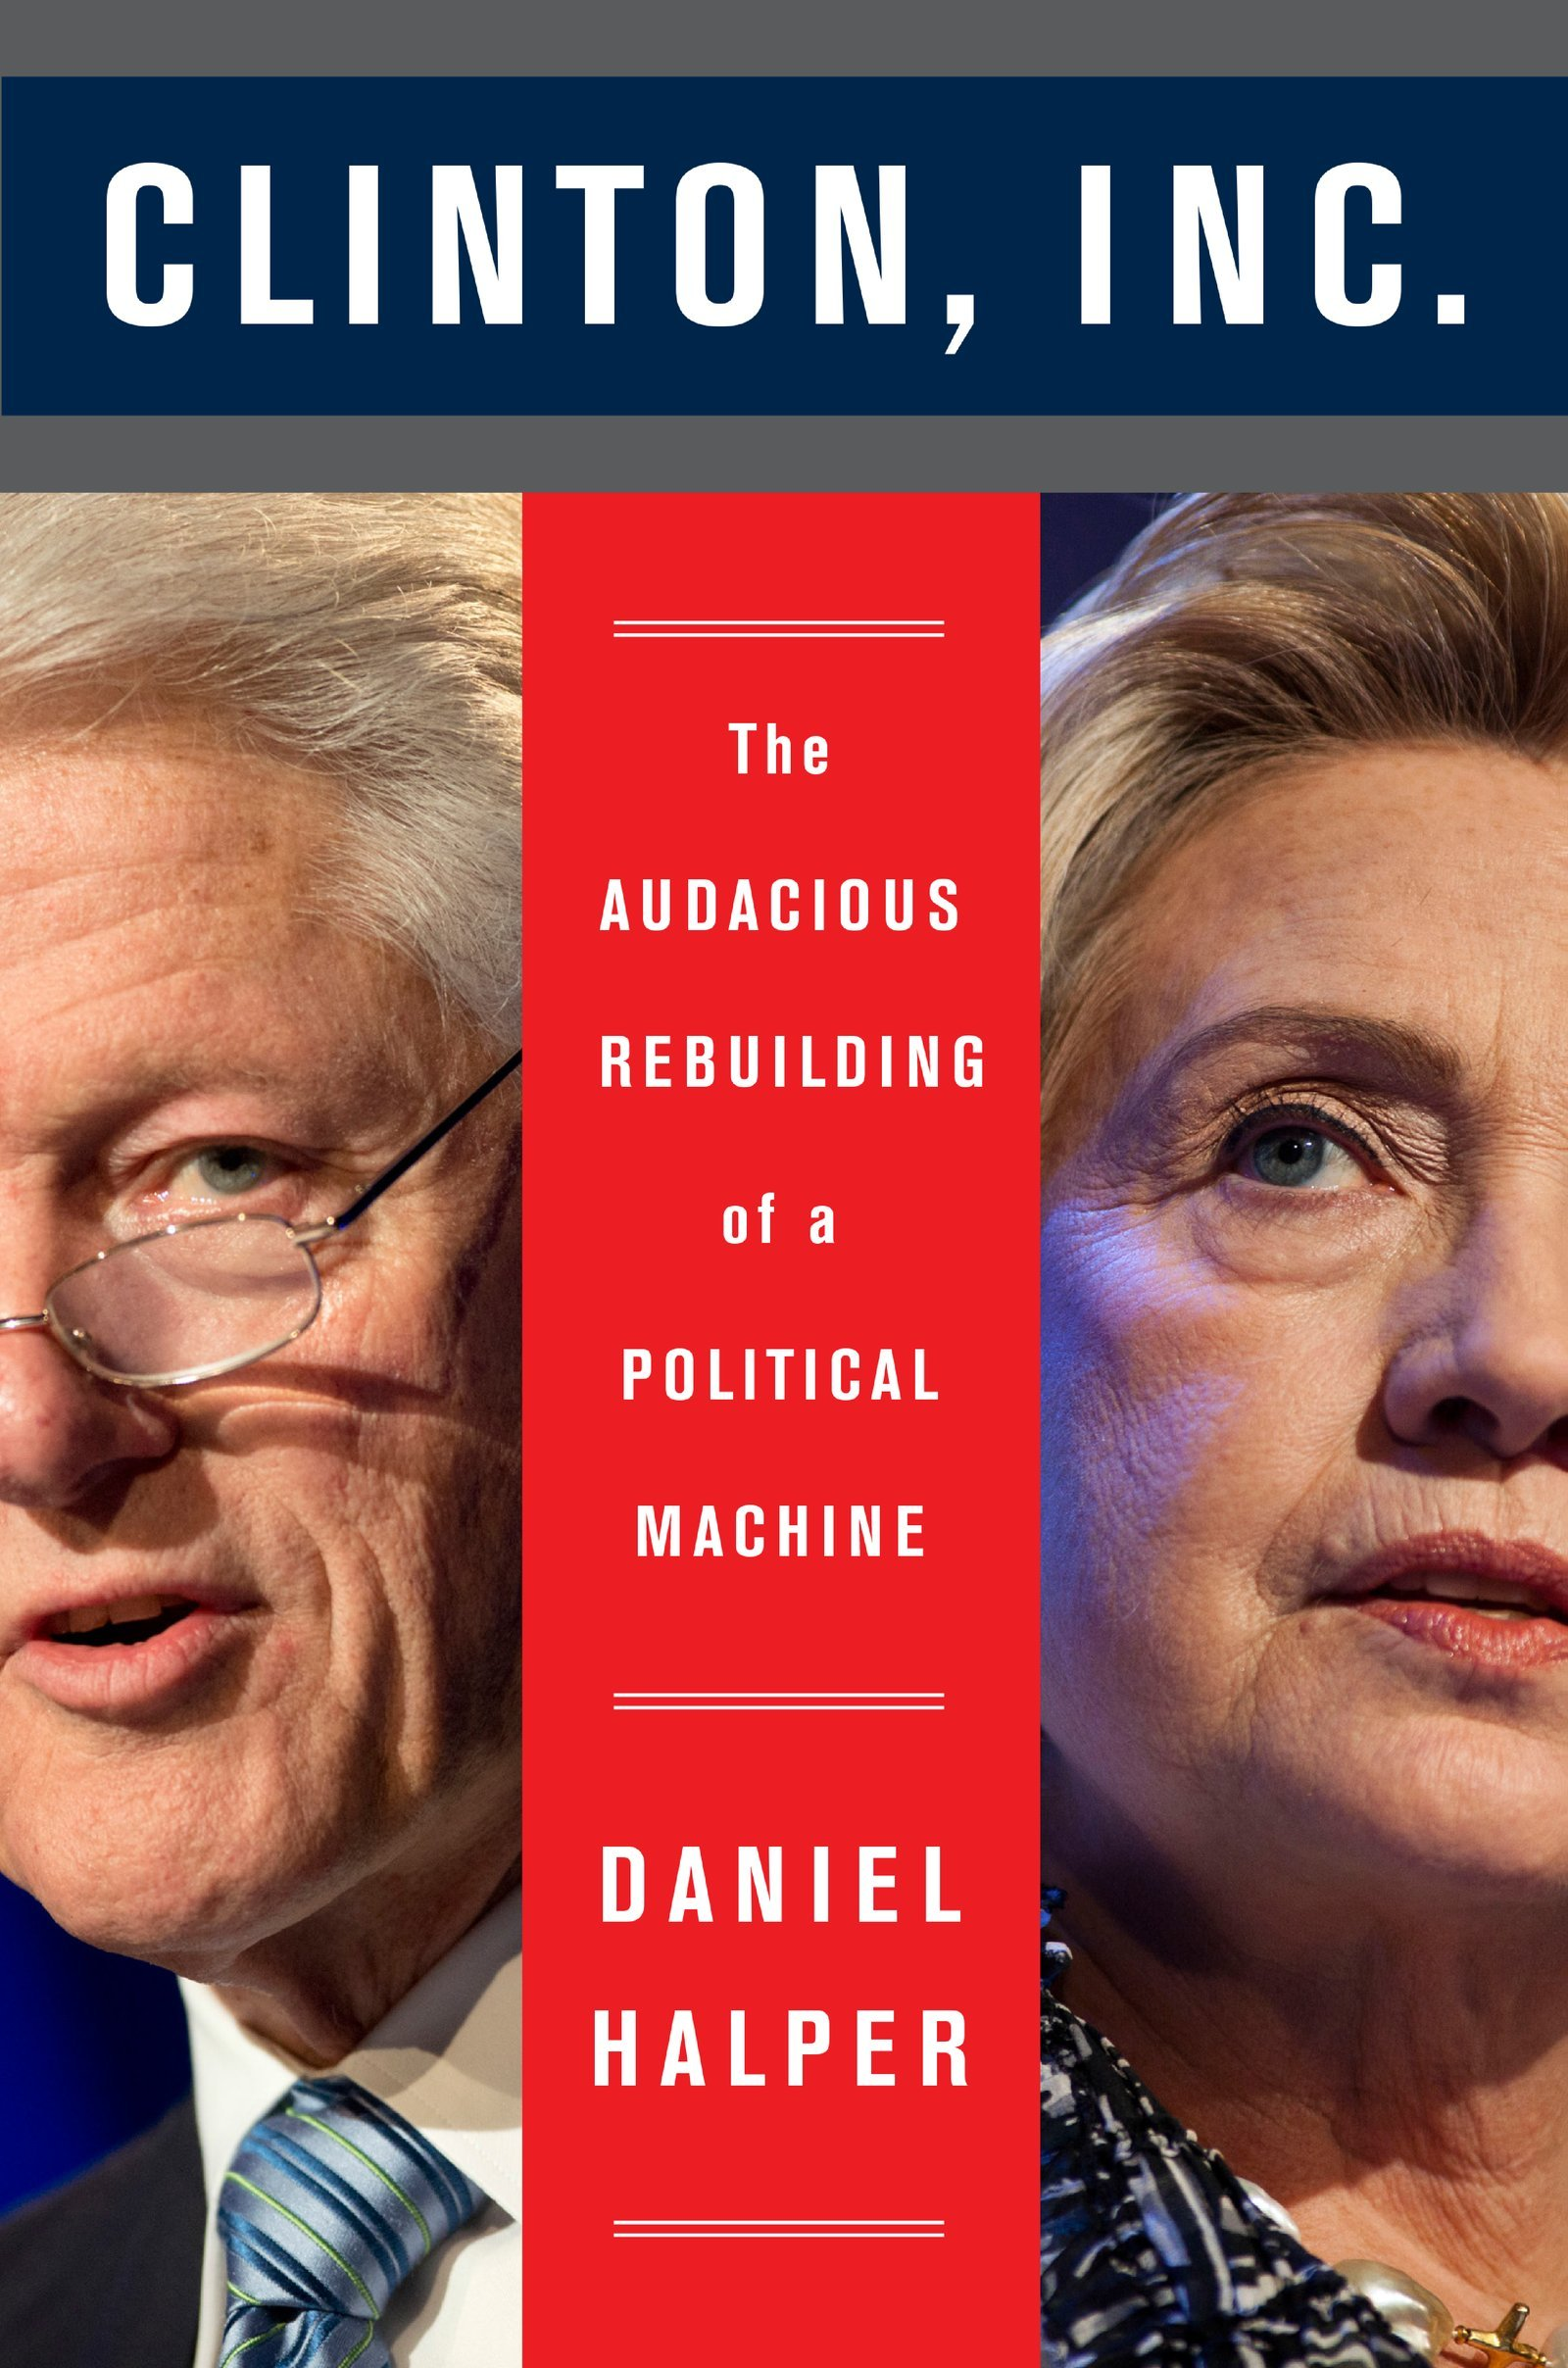 Halper – Clinton, Inc.: The Audacious Rebuilding of a Political Machine